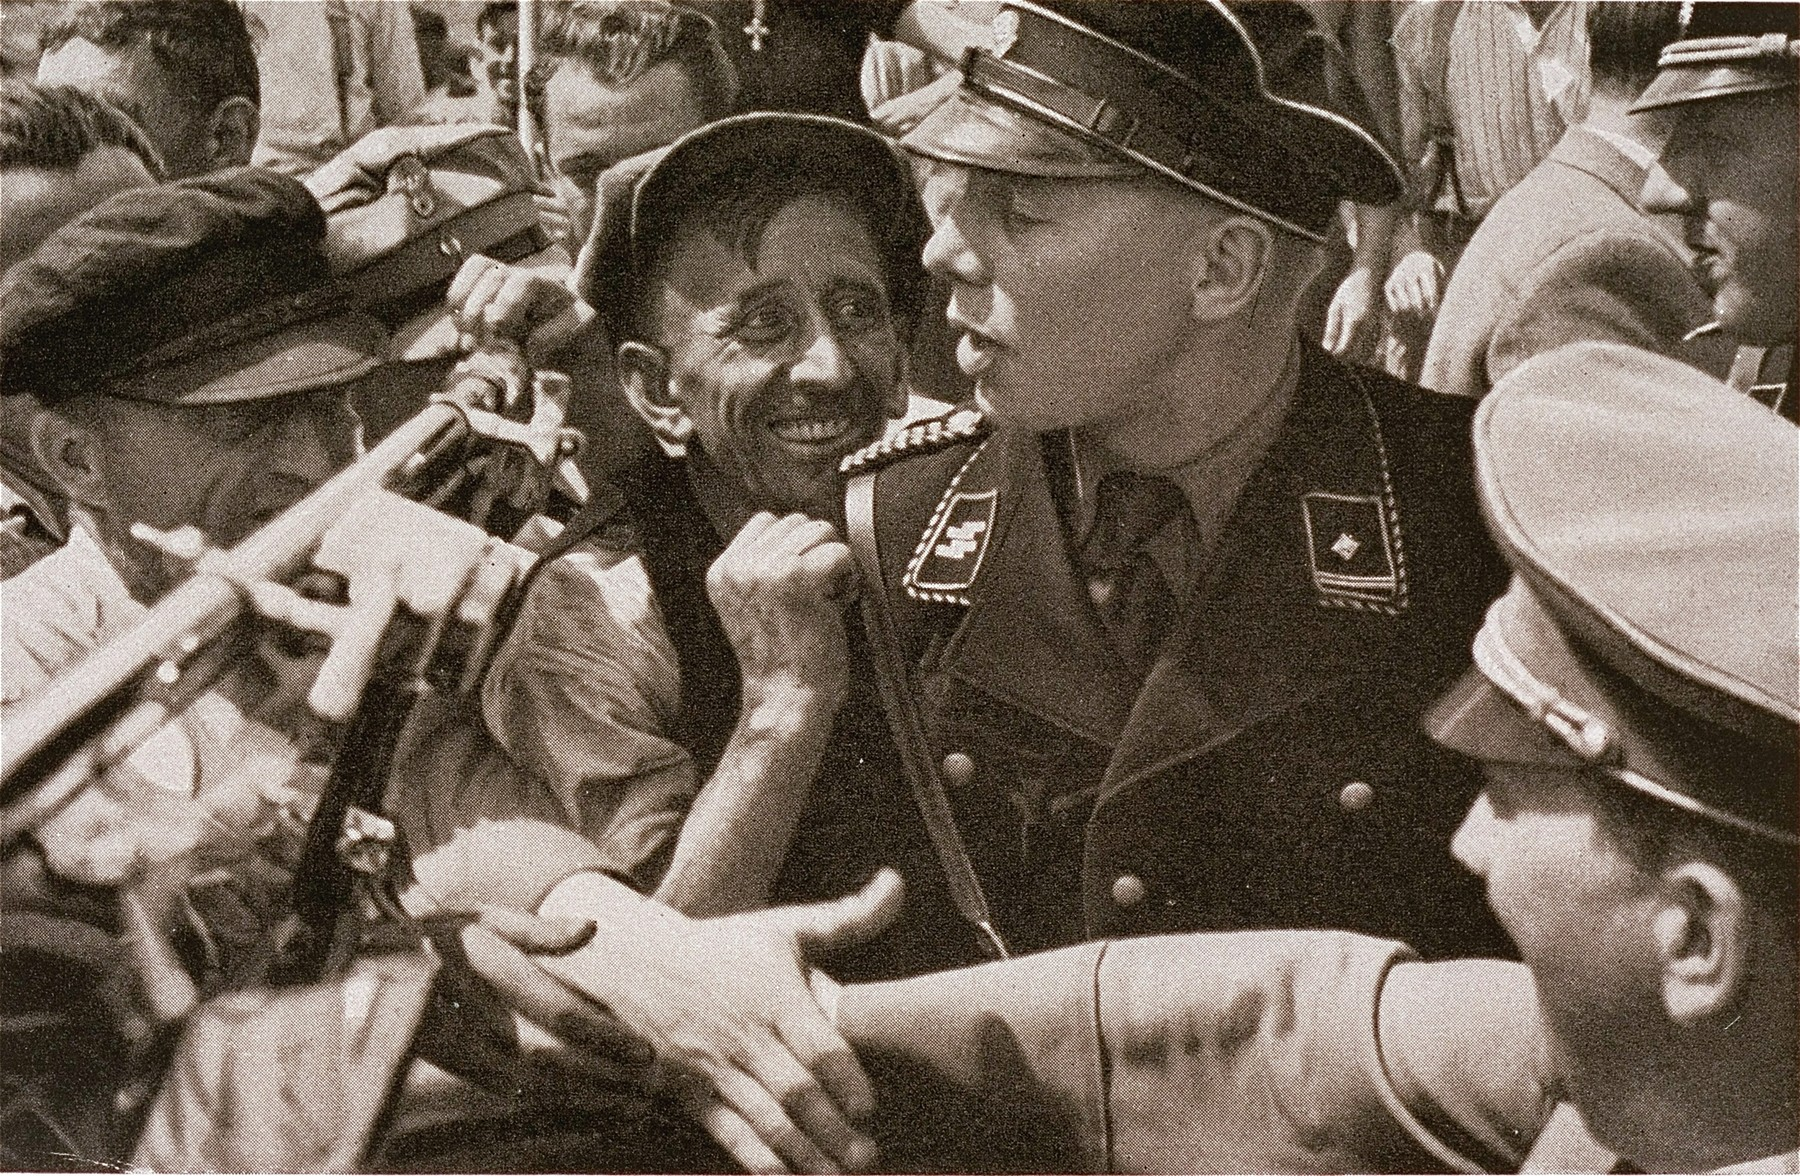 An SS guard shields Adolf Hitler from enthusiastic supporters who wish to shake his hand.